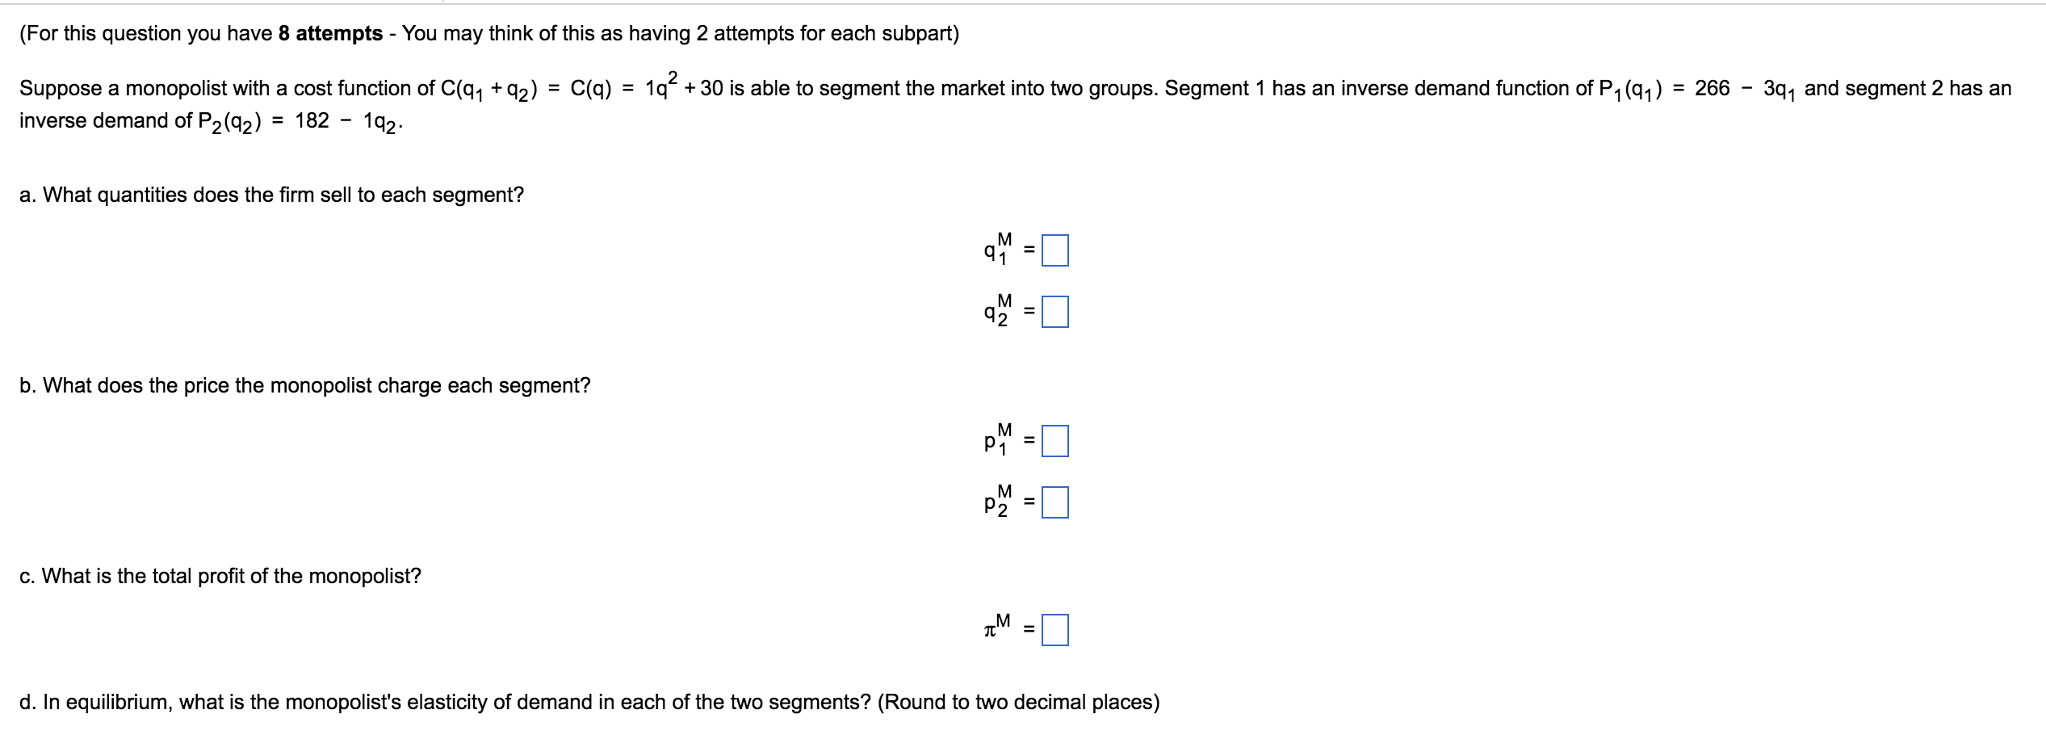 Suppose a monopolist with a cost function of C(q_1